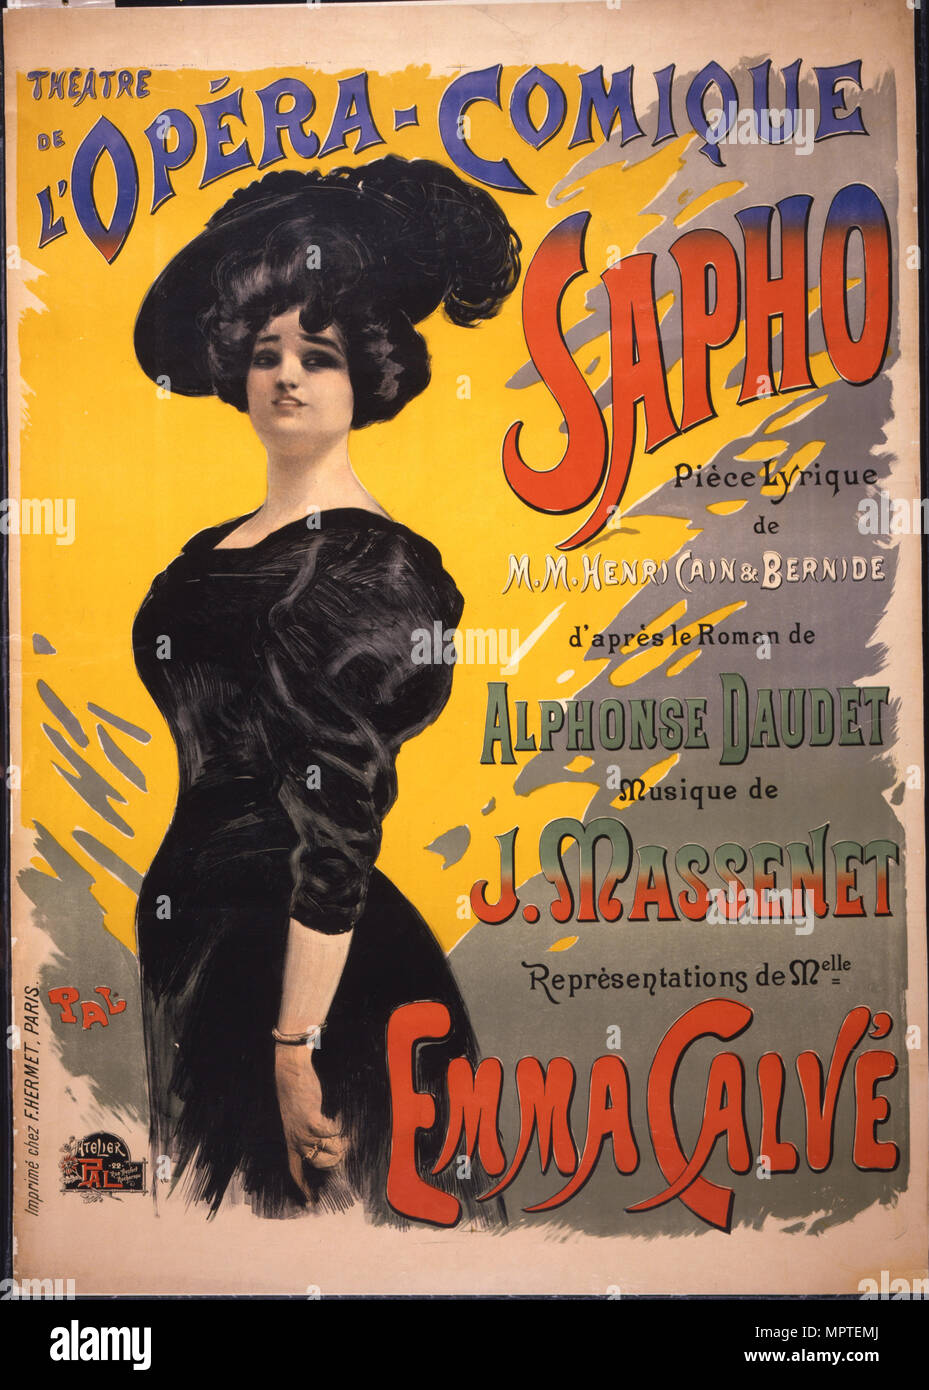 Emma Calvé as Fanny Legrand. Poster for the premiere of opéra-comique Sapho by Massenet performed on Stock Photo